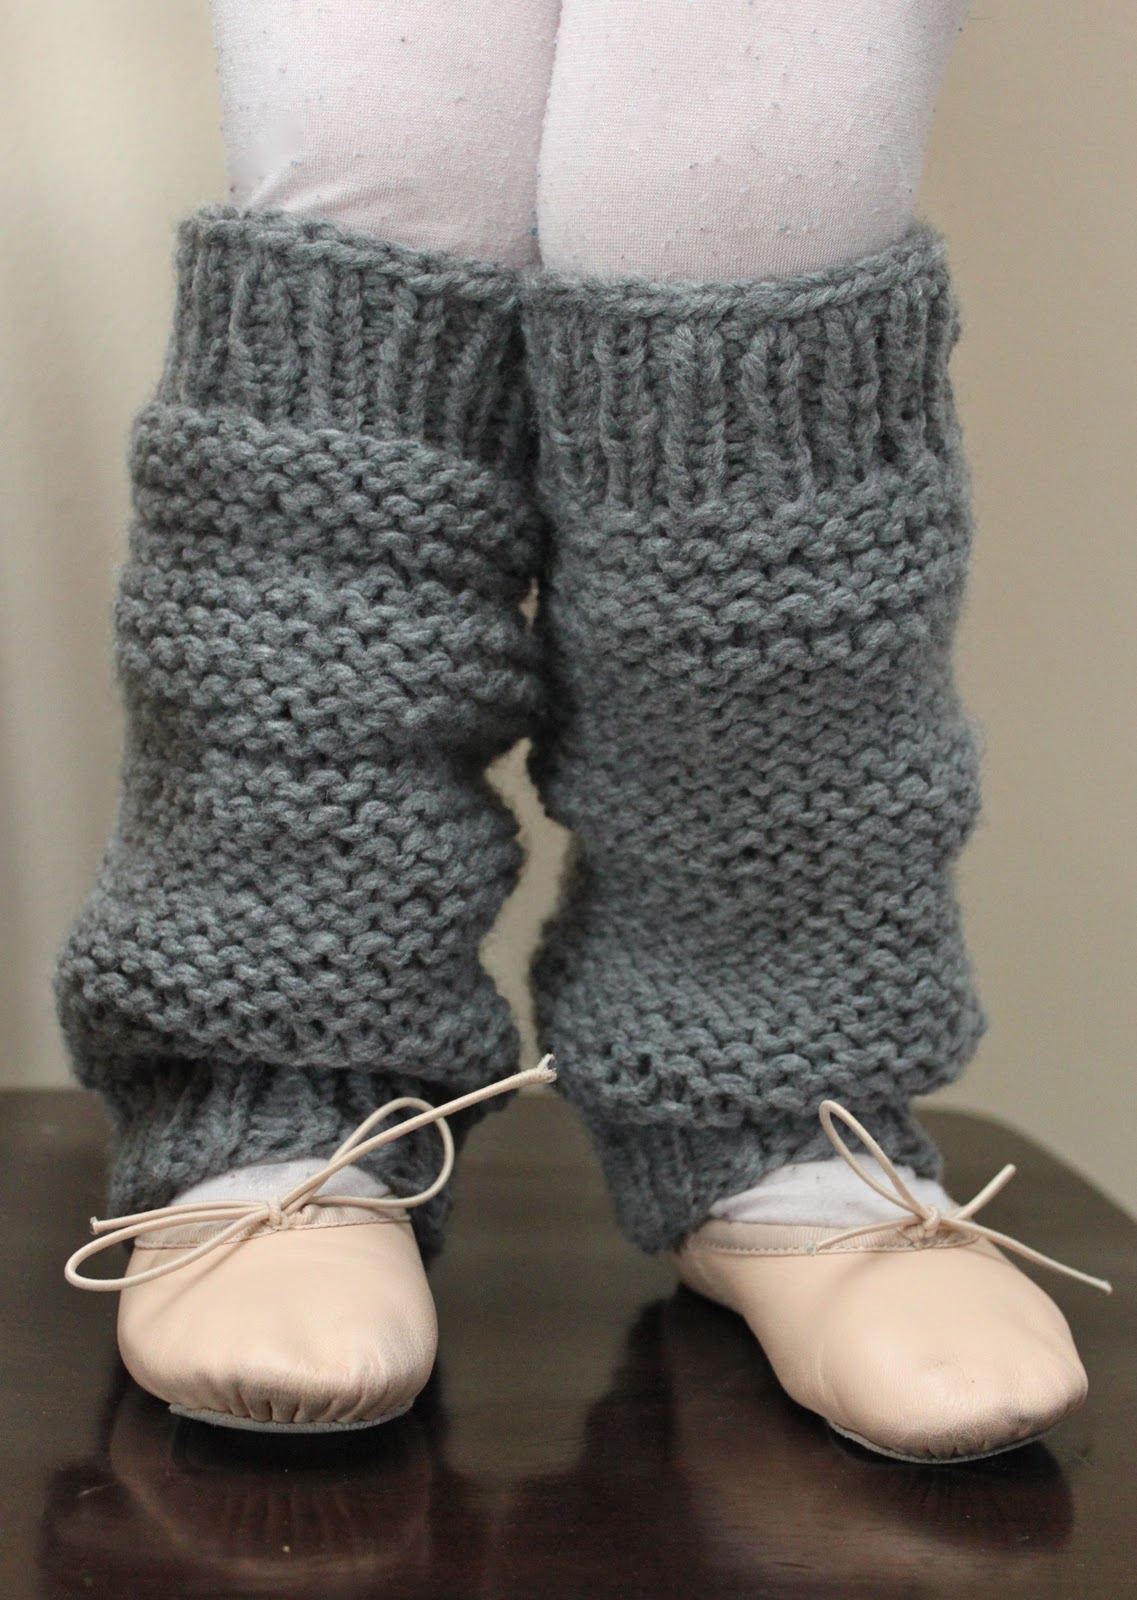 Knitting Pattern For Toddler Leggings : Little Girls Knit Legwarmers {A Pattern} - Smashed Peas & Carrots